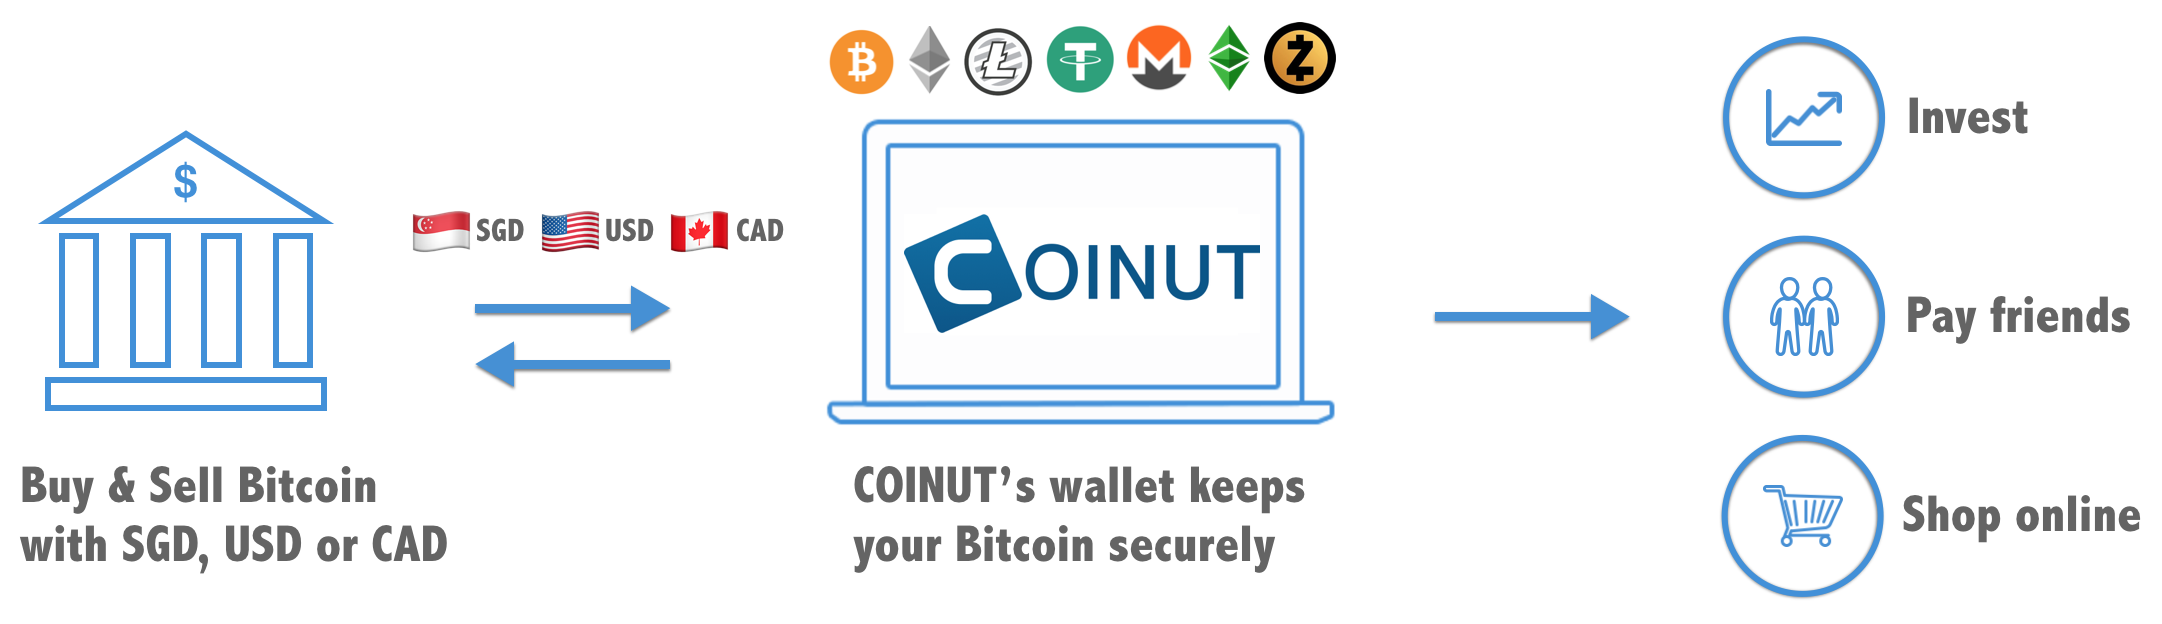 Coinut Coin Ultimate Trading Makes It Really Easy For Anyone To Bitcoin Using Singapore Dollars Sgd Us Usd Or Canadian Cad